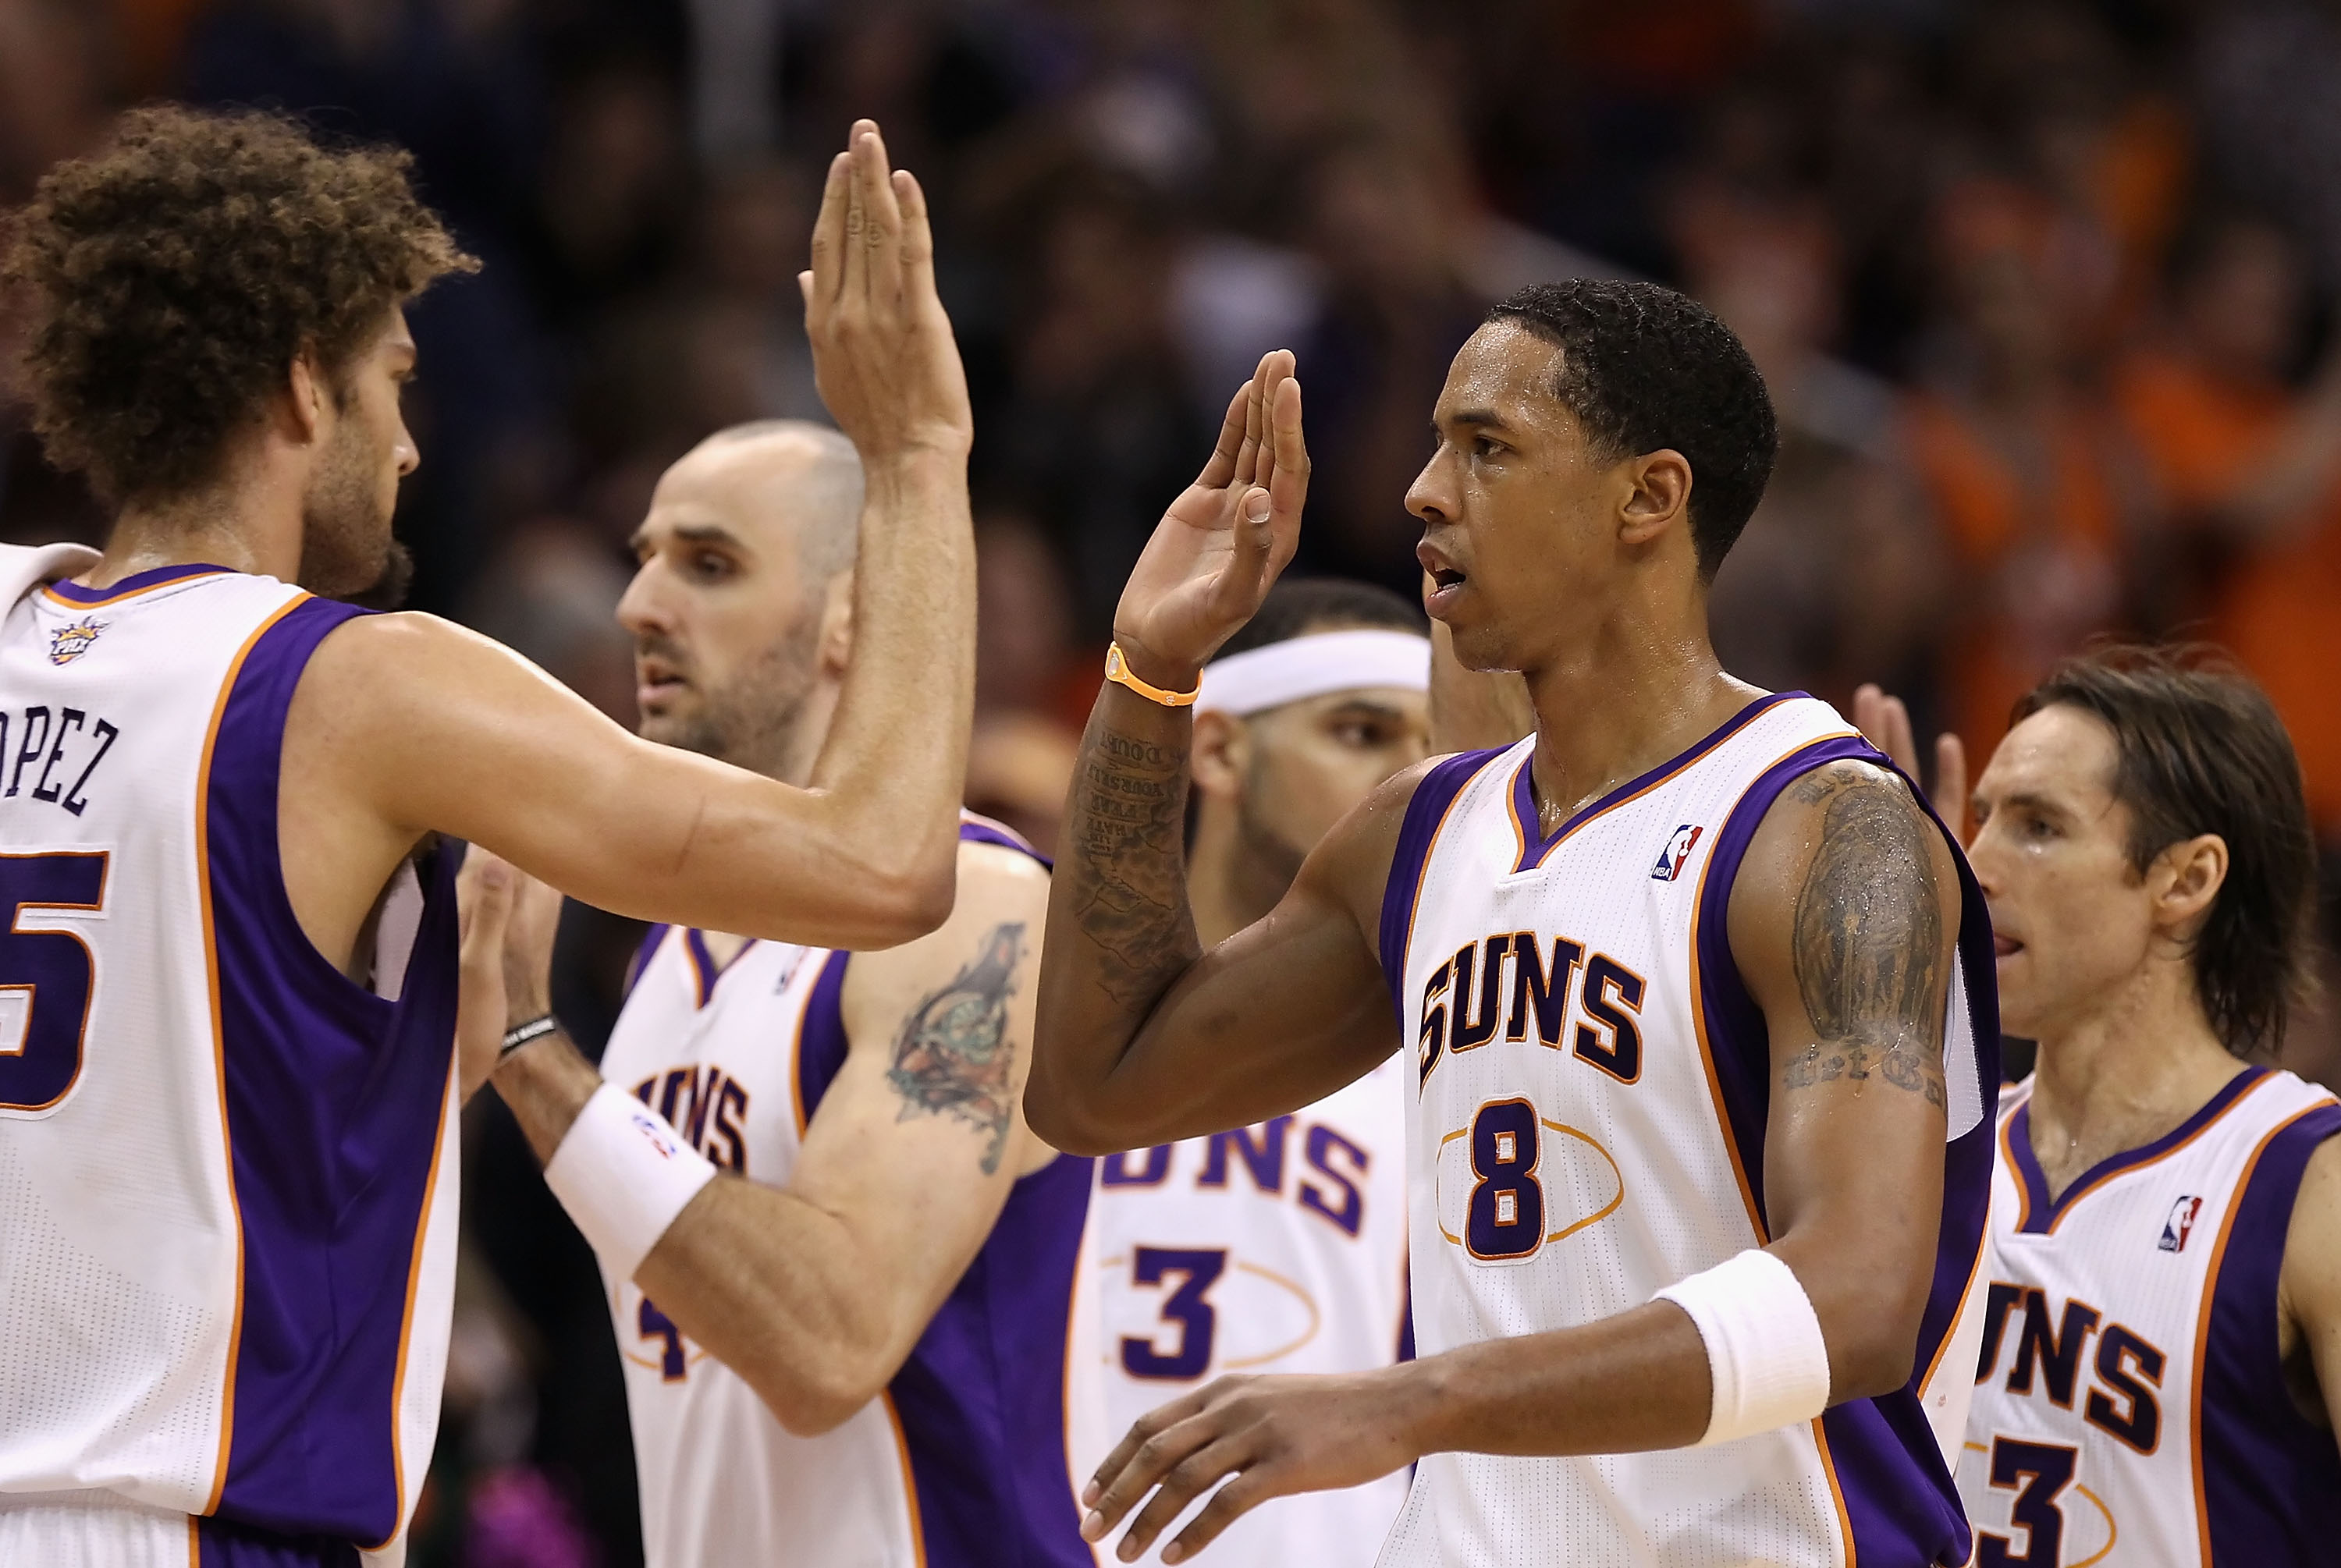 PHOENIX - DECEMBER 23:  Channing Frye #8 of the Phoenix Suns high fives teammates during the NBA game against the Miami Heat at US Airways Center on December 23, 2010 in Phoenix, Arizona.  The Heat defeated the Suns 95-83.  NOTE TO USER: User expressly ac